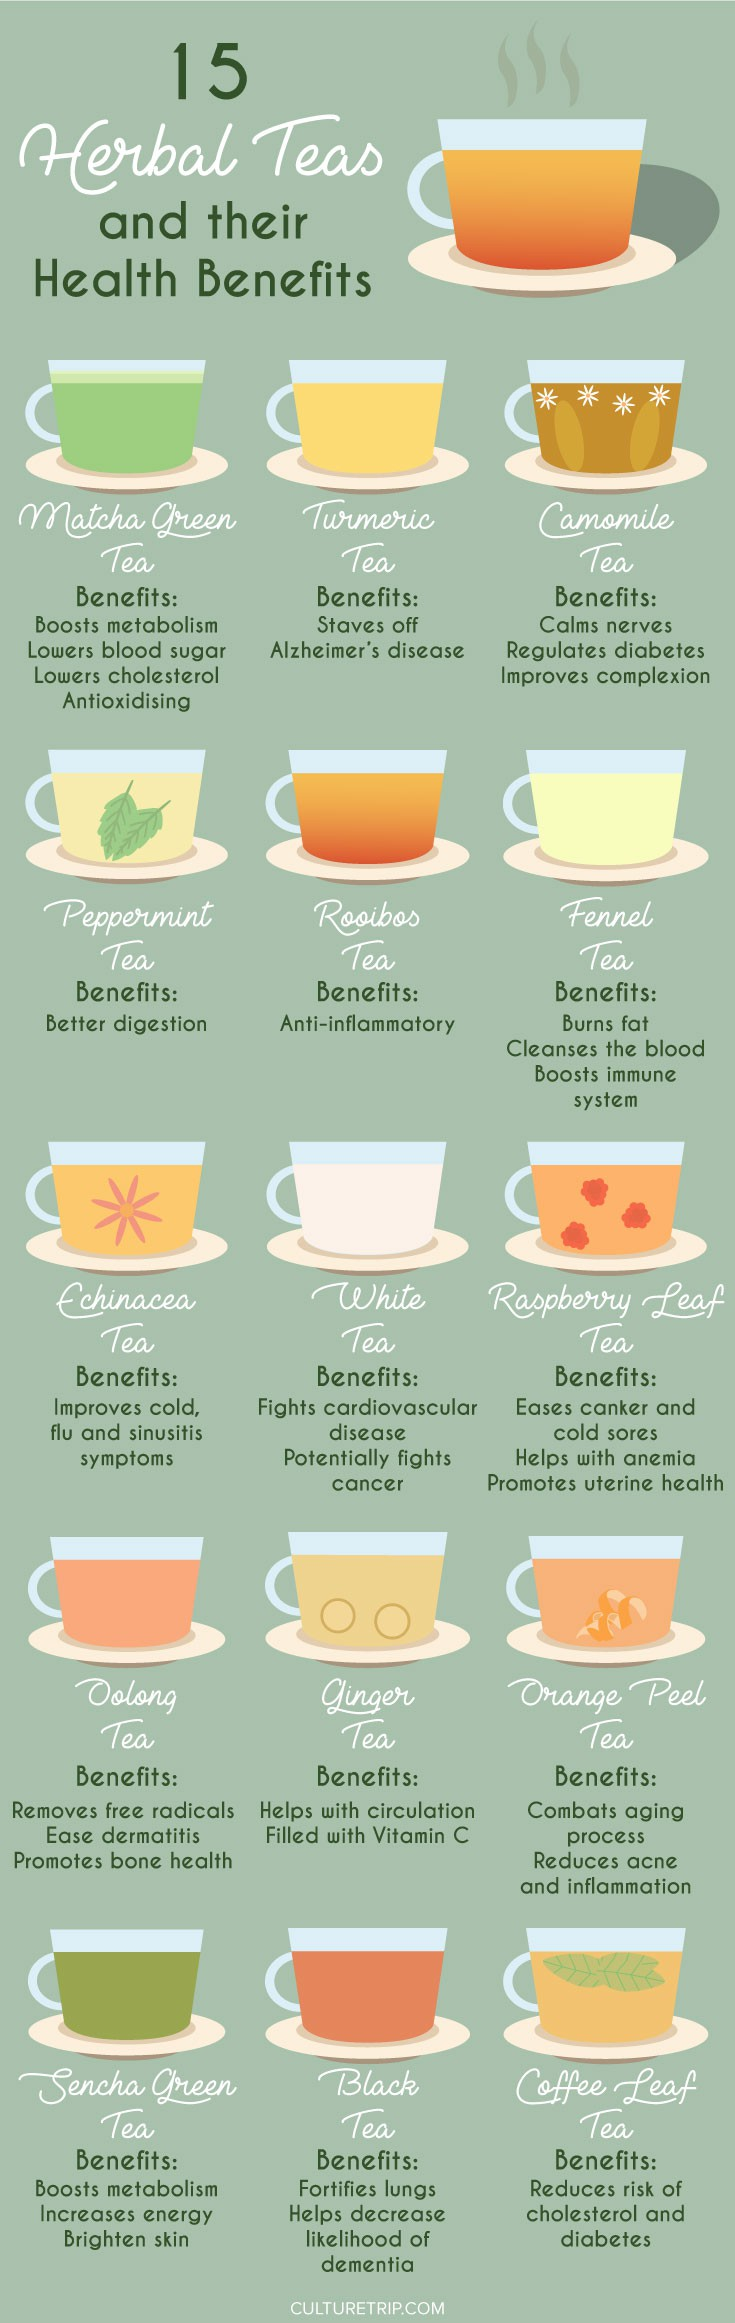 15 Herbal Teas And Their Health Benefits